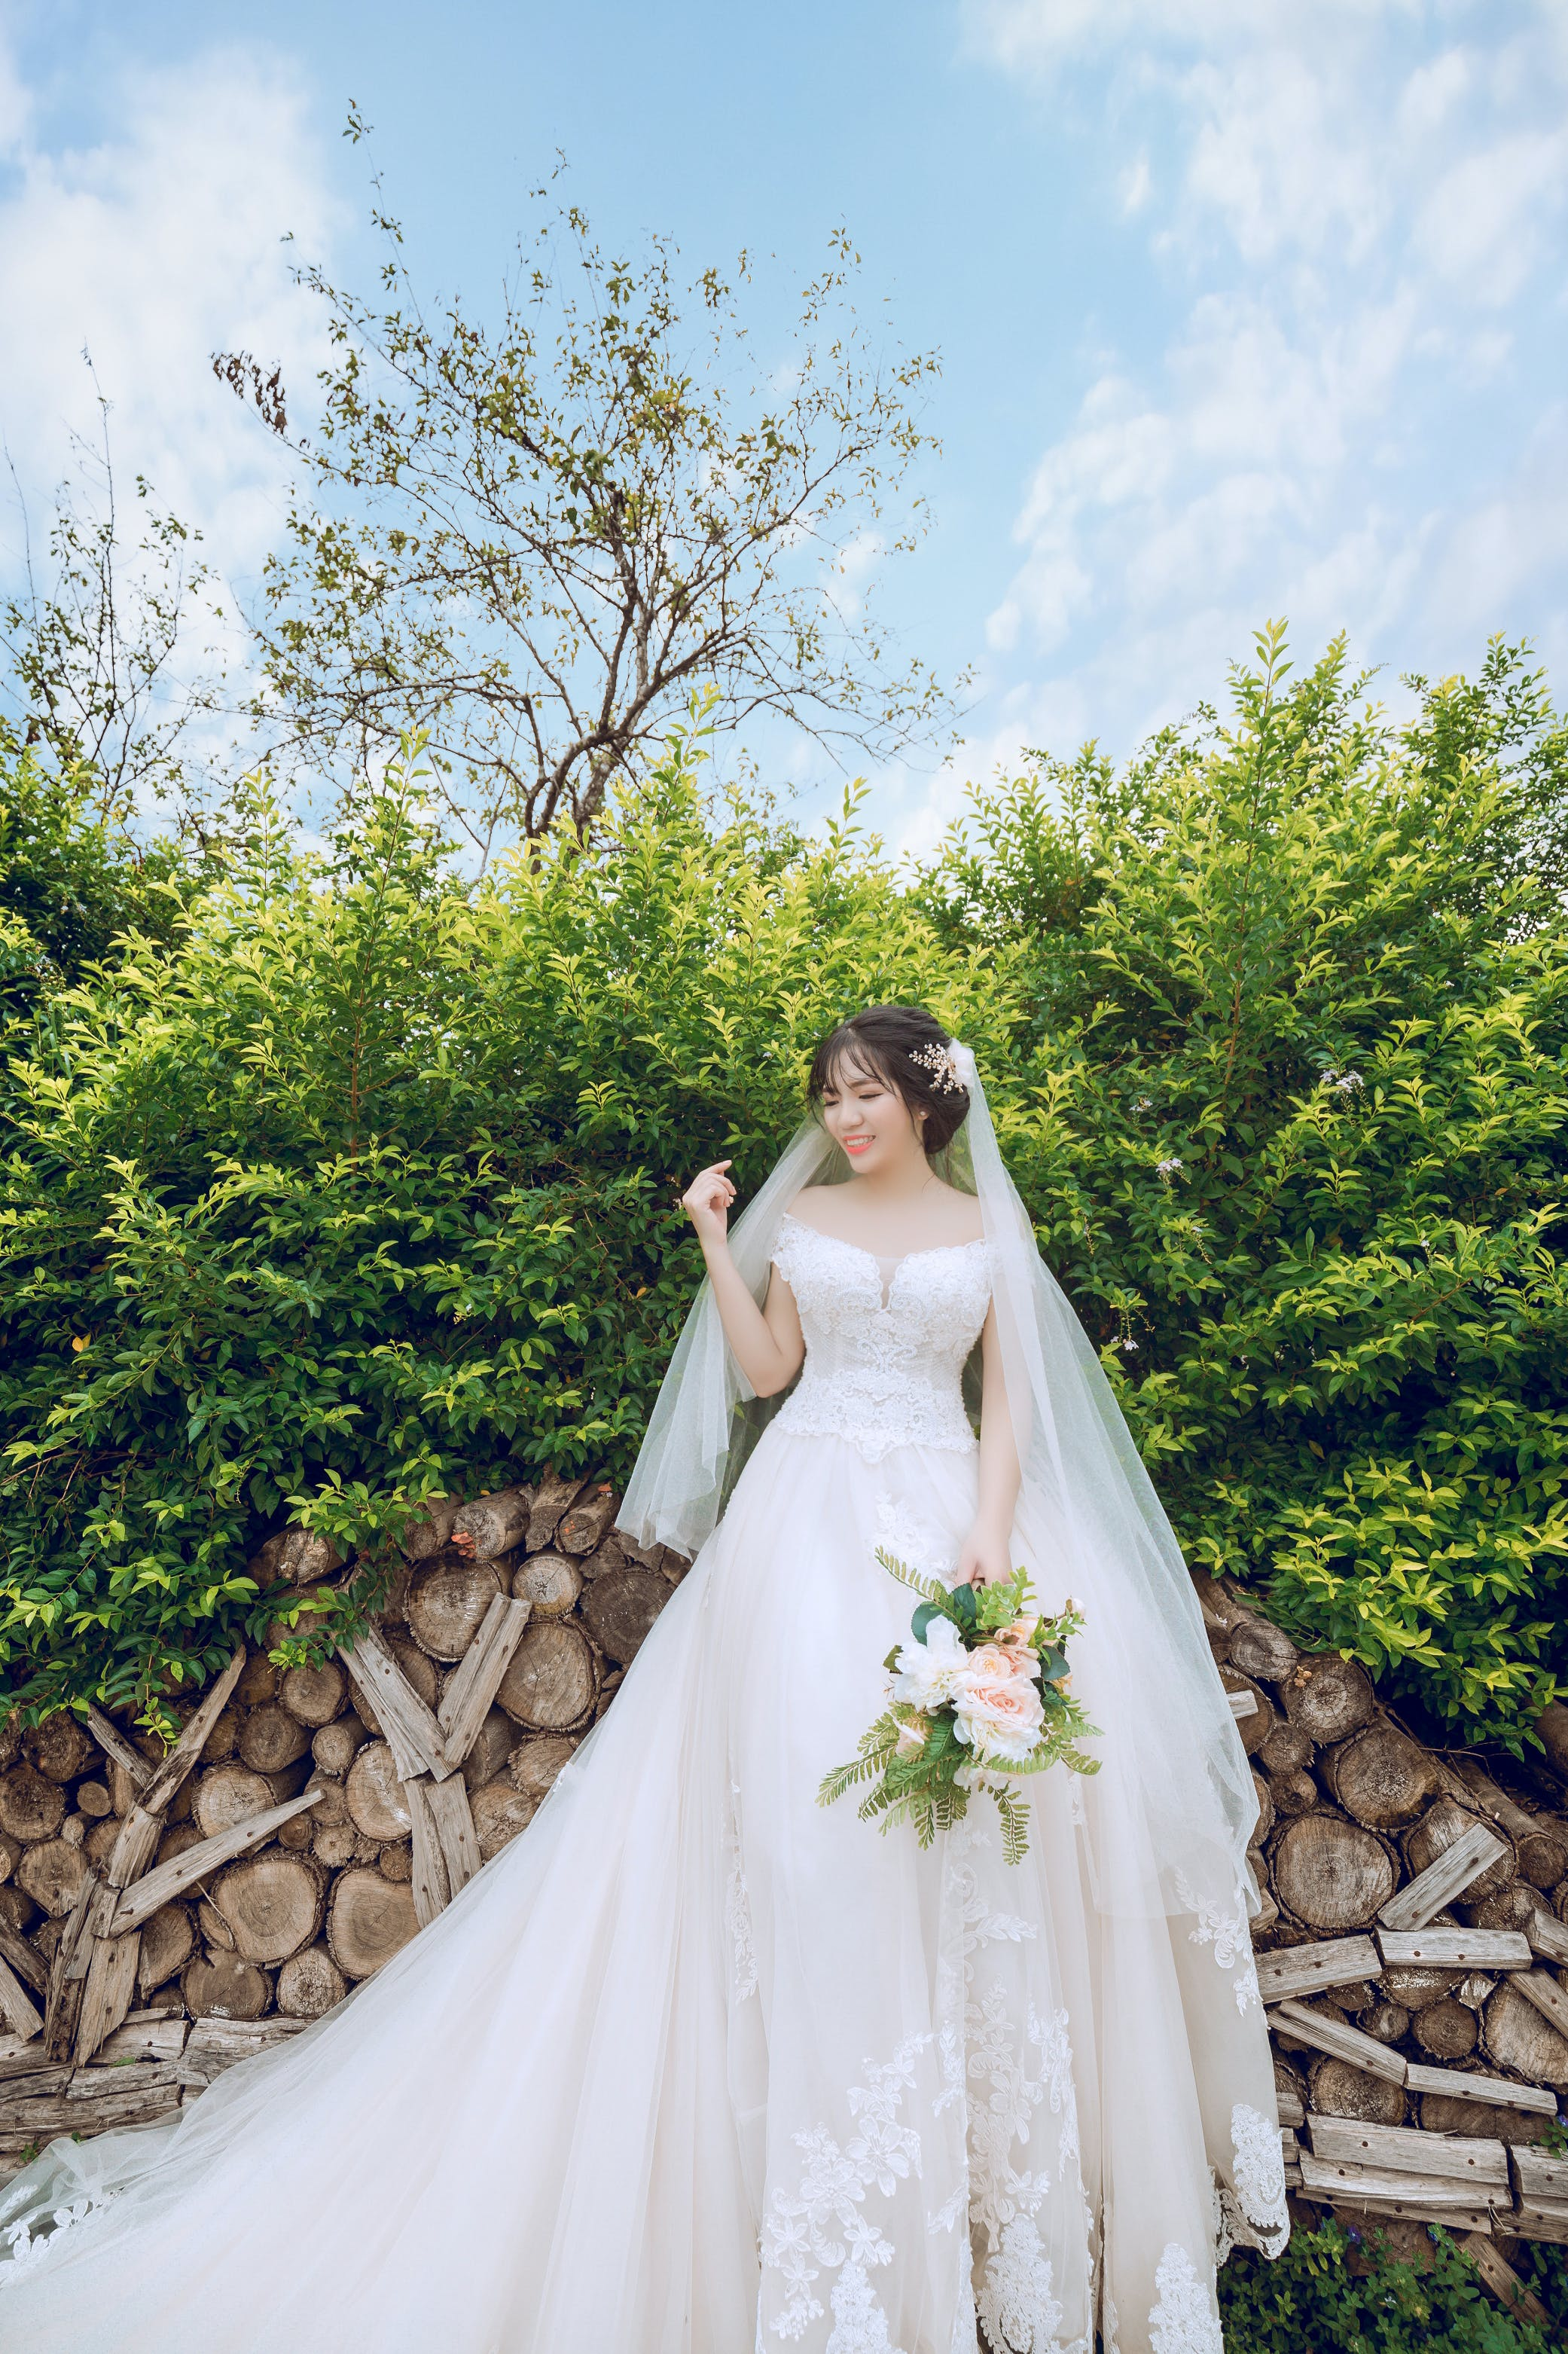 Bride Standing in Front Green Leaf Plant While Holding Bouquet